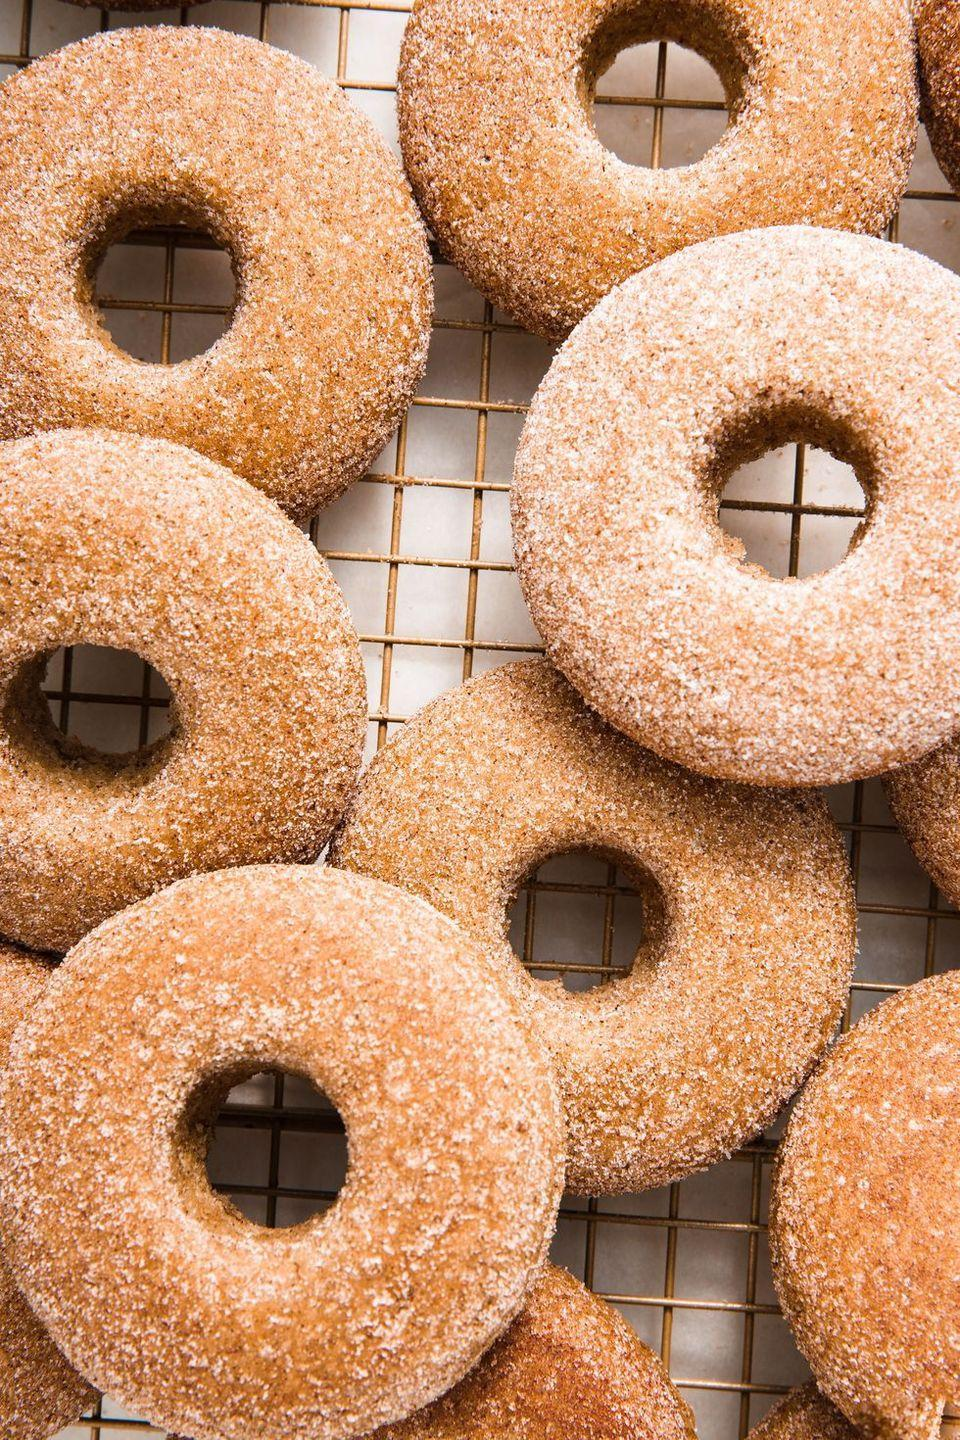 "<p>Start and end your holiday in the best way possible: a sugar-covered donut in one hand and a mug of hot apple cider in the other.</p><p><em><a href=""https://www.delish.com/cooking/recipe-ideas/a25429705/vegan-donuts/"" rel=""nofollow noopener"" target=""_blank"" data-ylk=""slk:Get the recipe at Delish »"" class=""link rapid-noclick-resp"">Get the recipe at Delish »</a></em></p>"